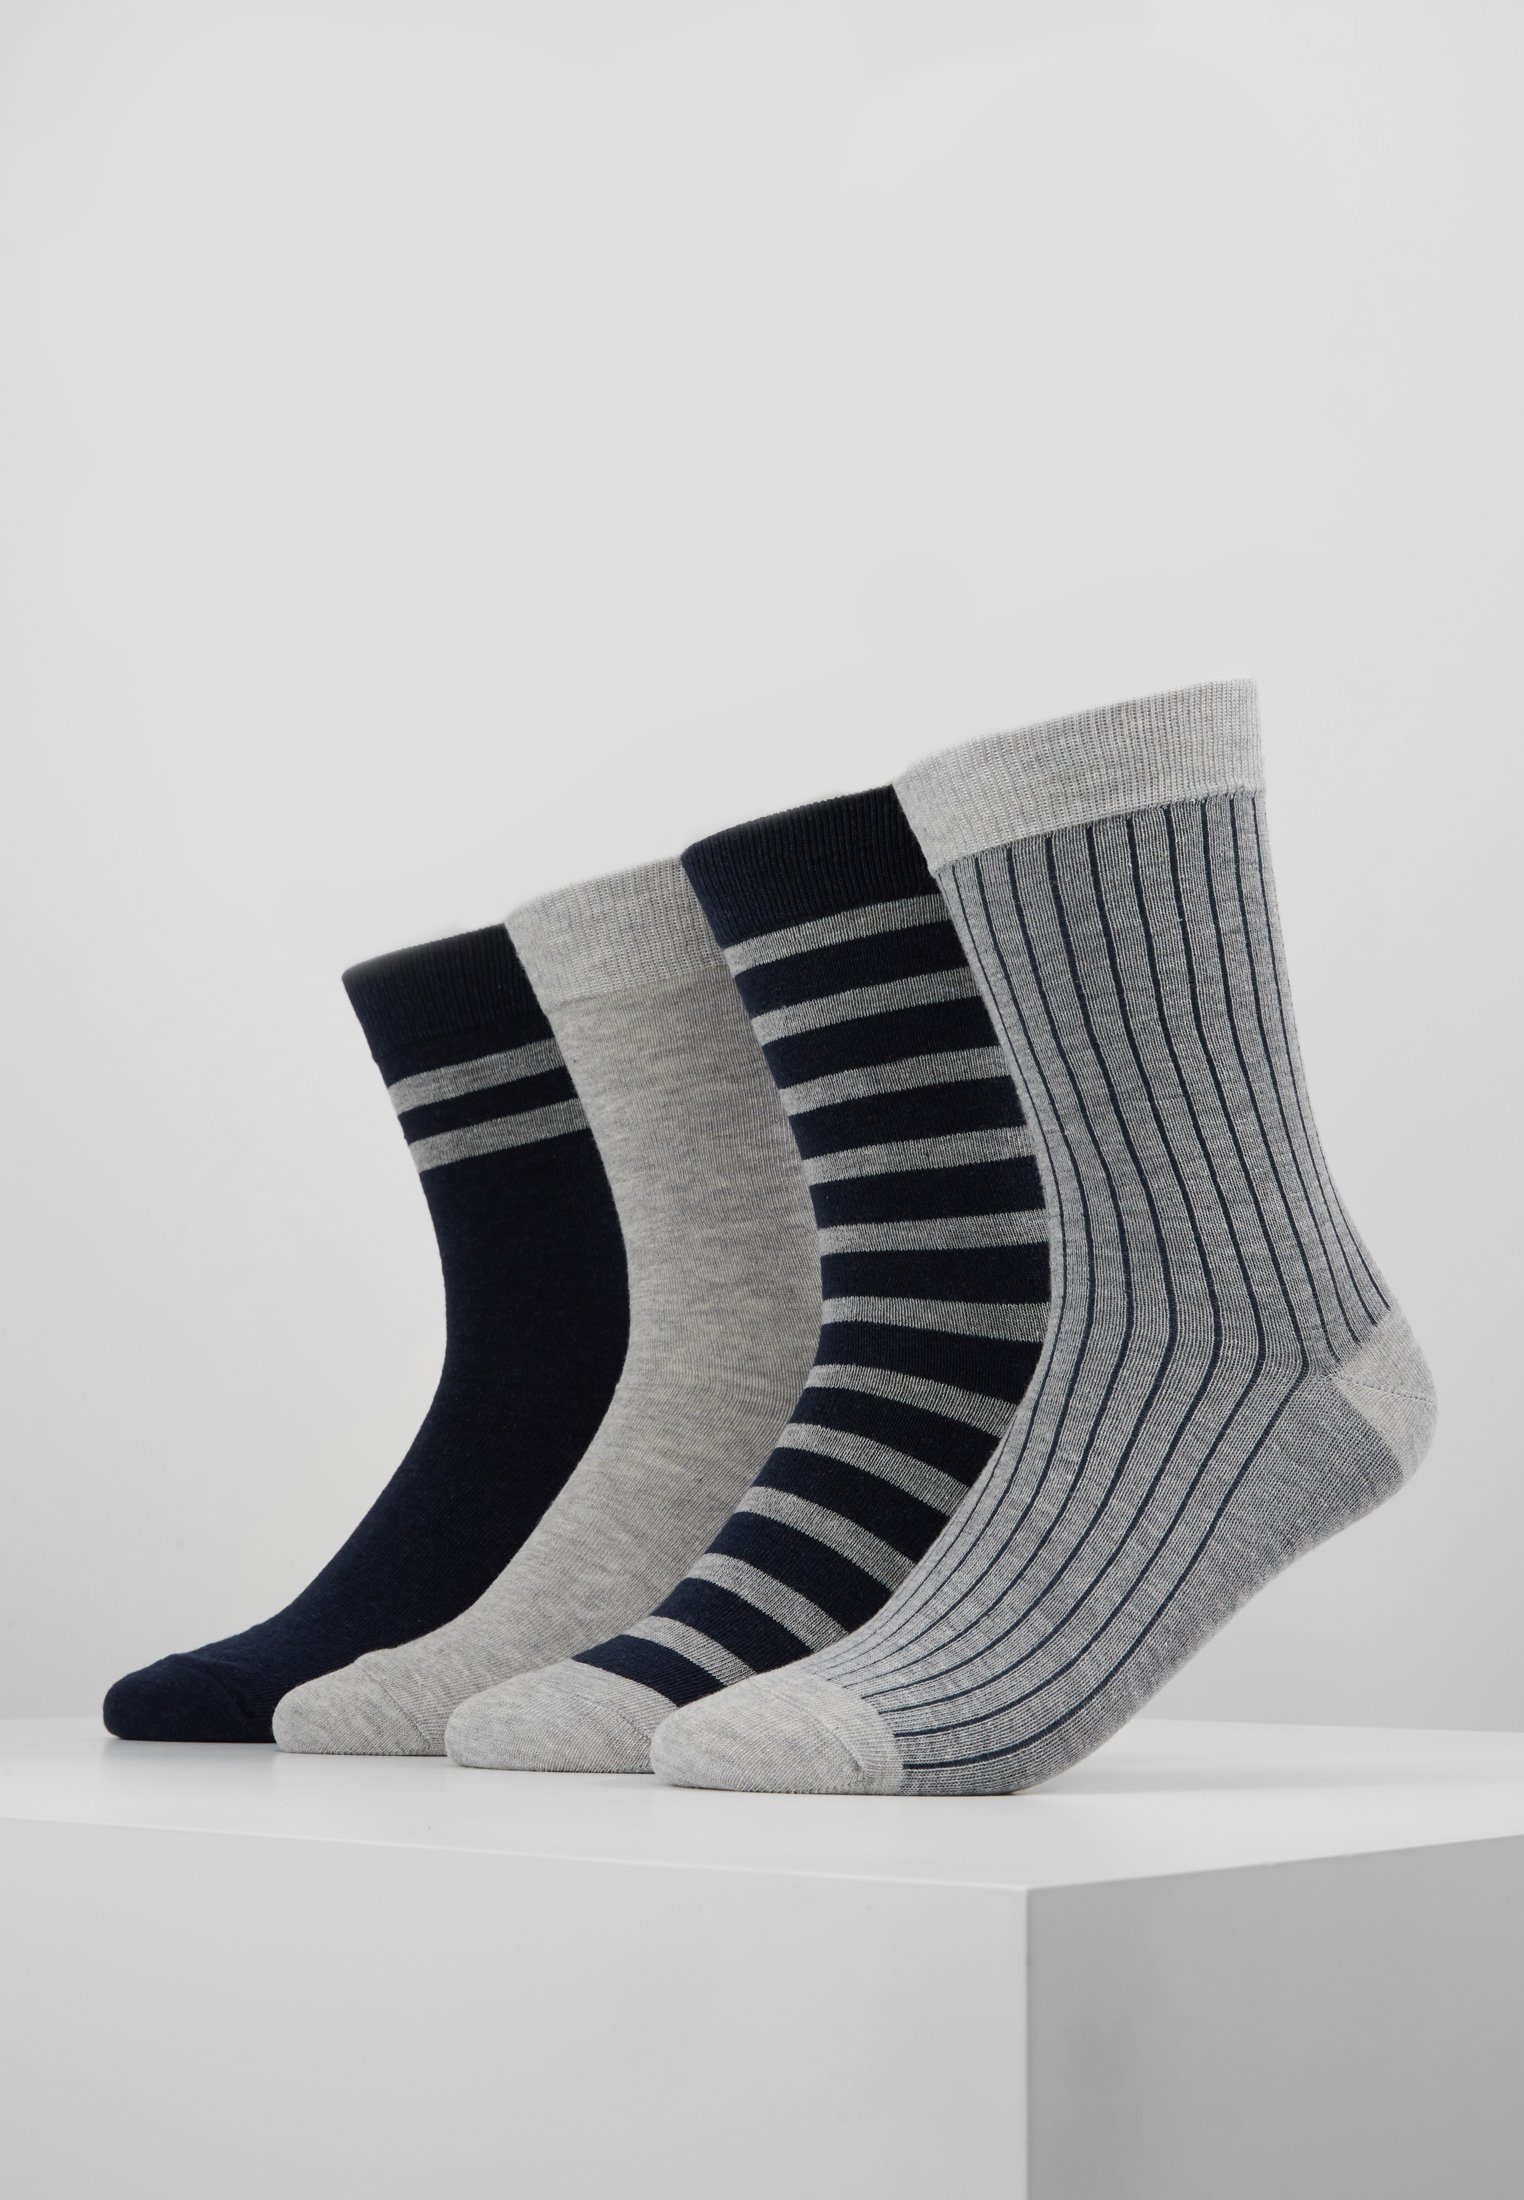 Grey Style Socks PackChaussettes blue Dim Eco Crew 4 kn0O8wP